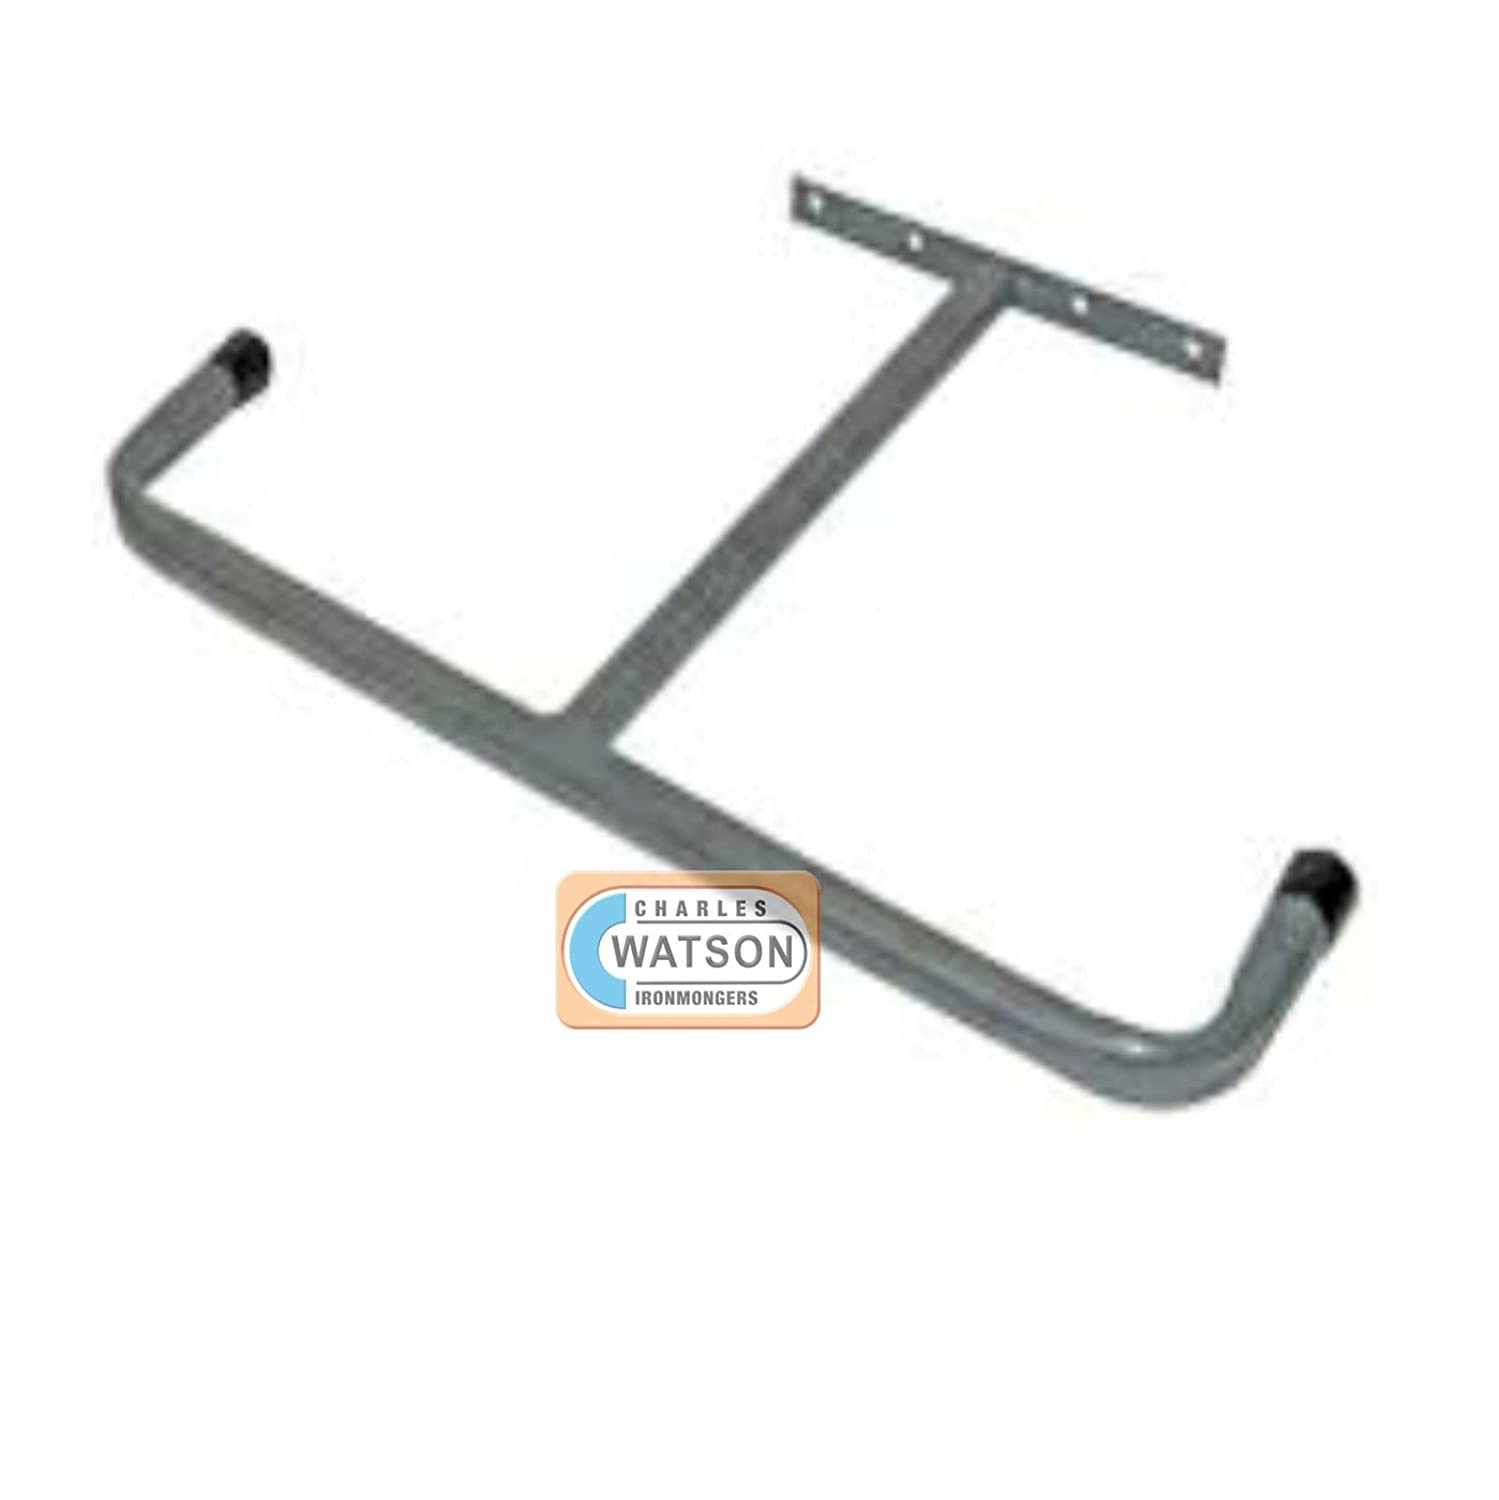 garage ladders and ladder in discount com discountgarageaccessories hanging with products accessories using handiwall tools handiaccessories hang